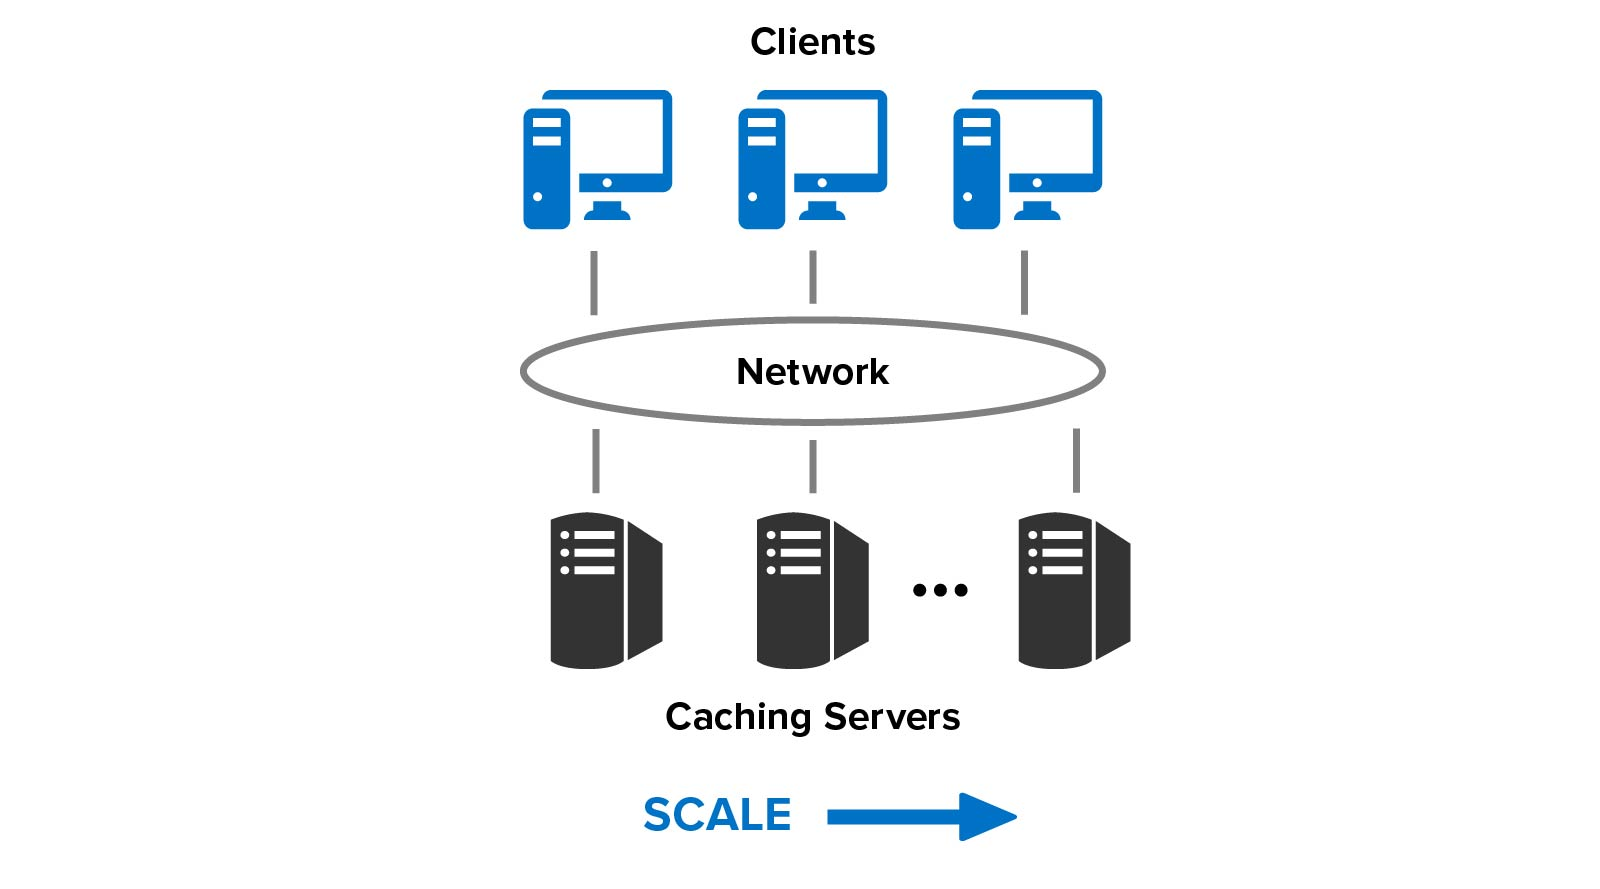 Scalable throughput in a distributed system handles a growing (not fixed) workload.